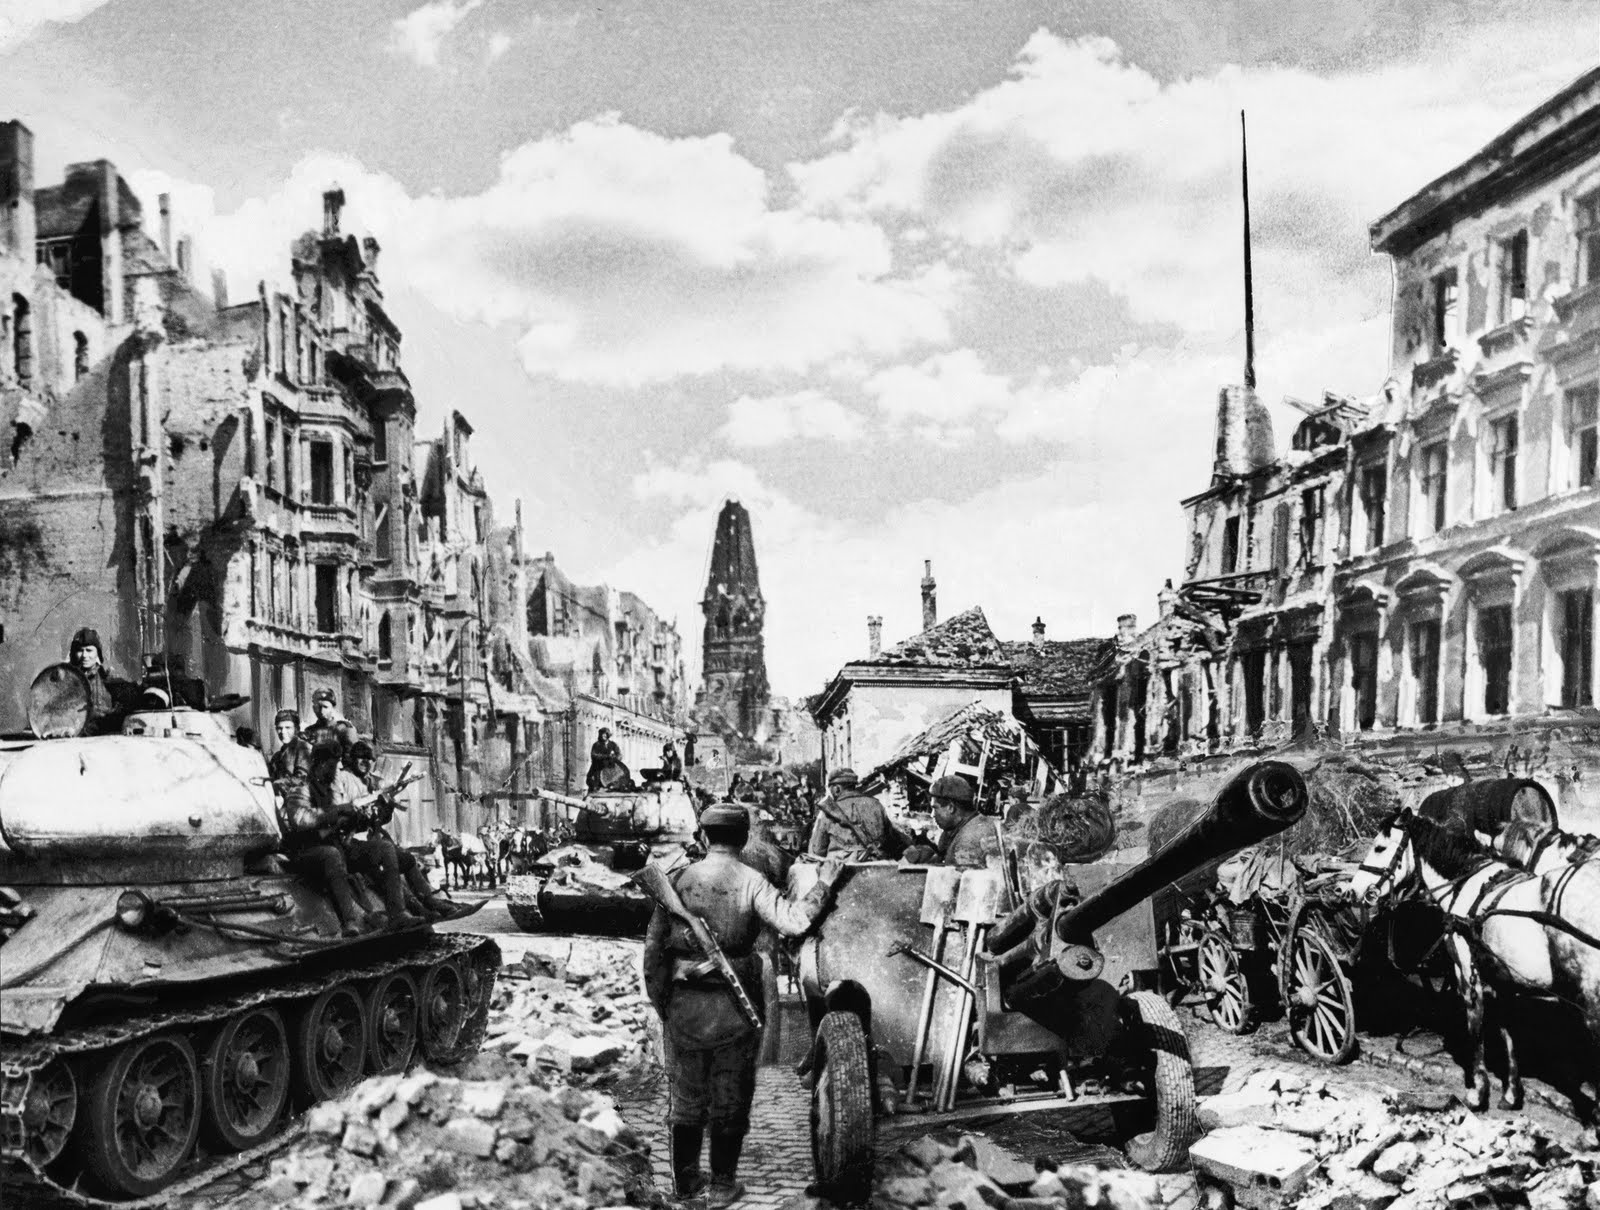 Aftermath of World War II